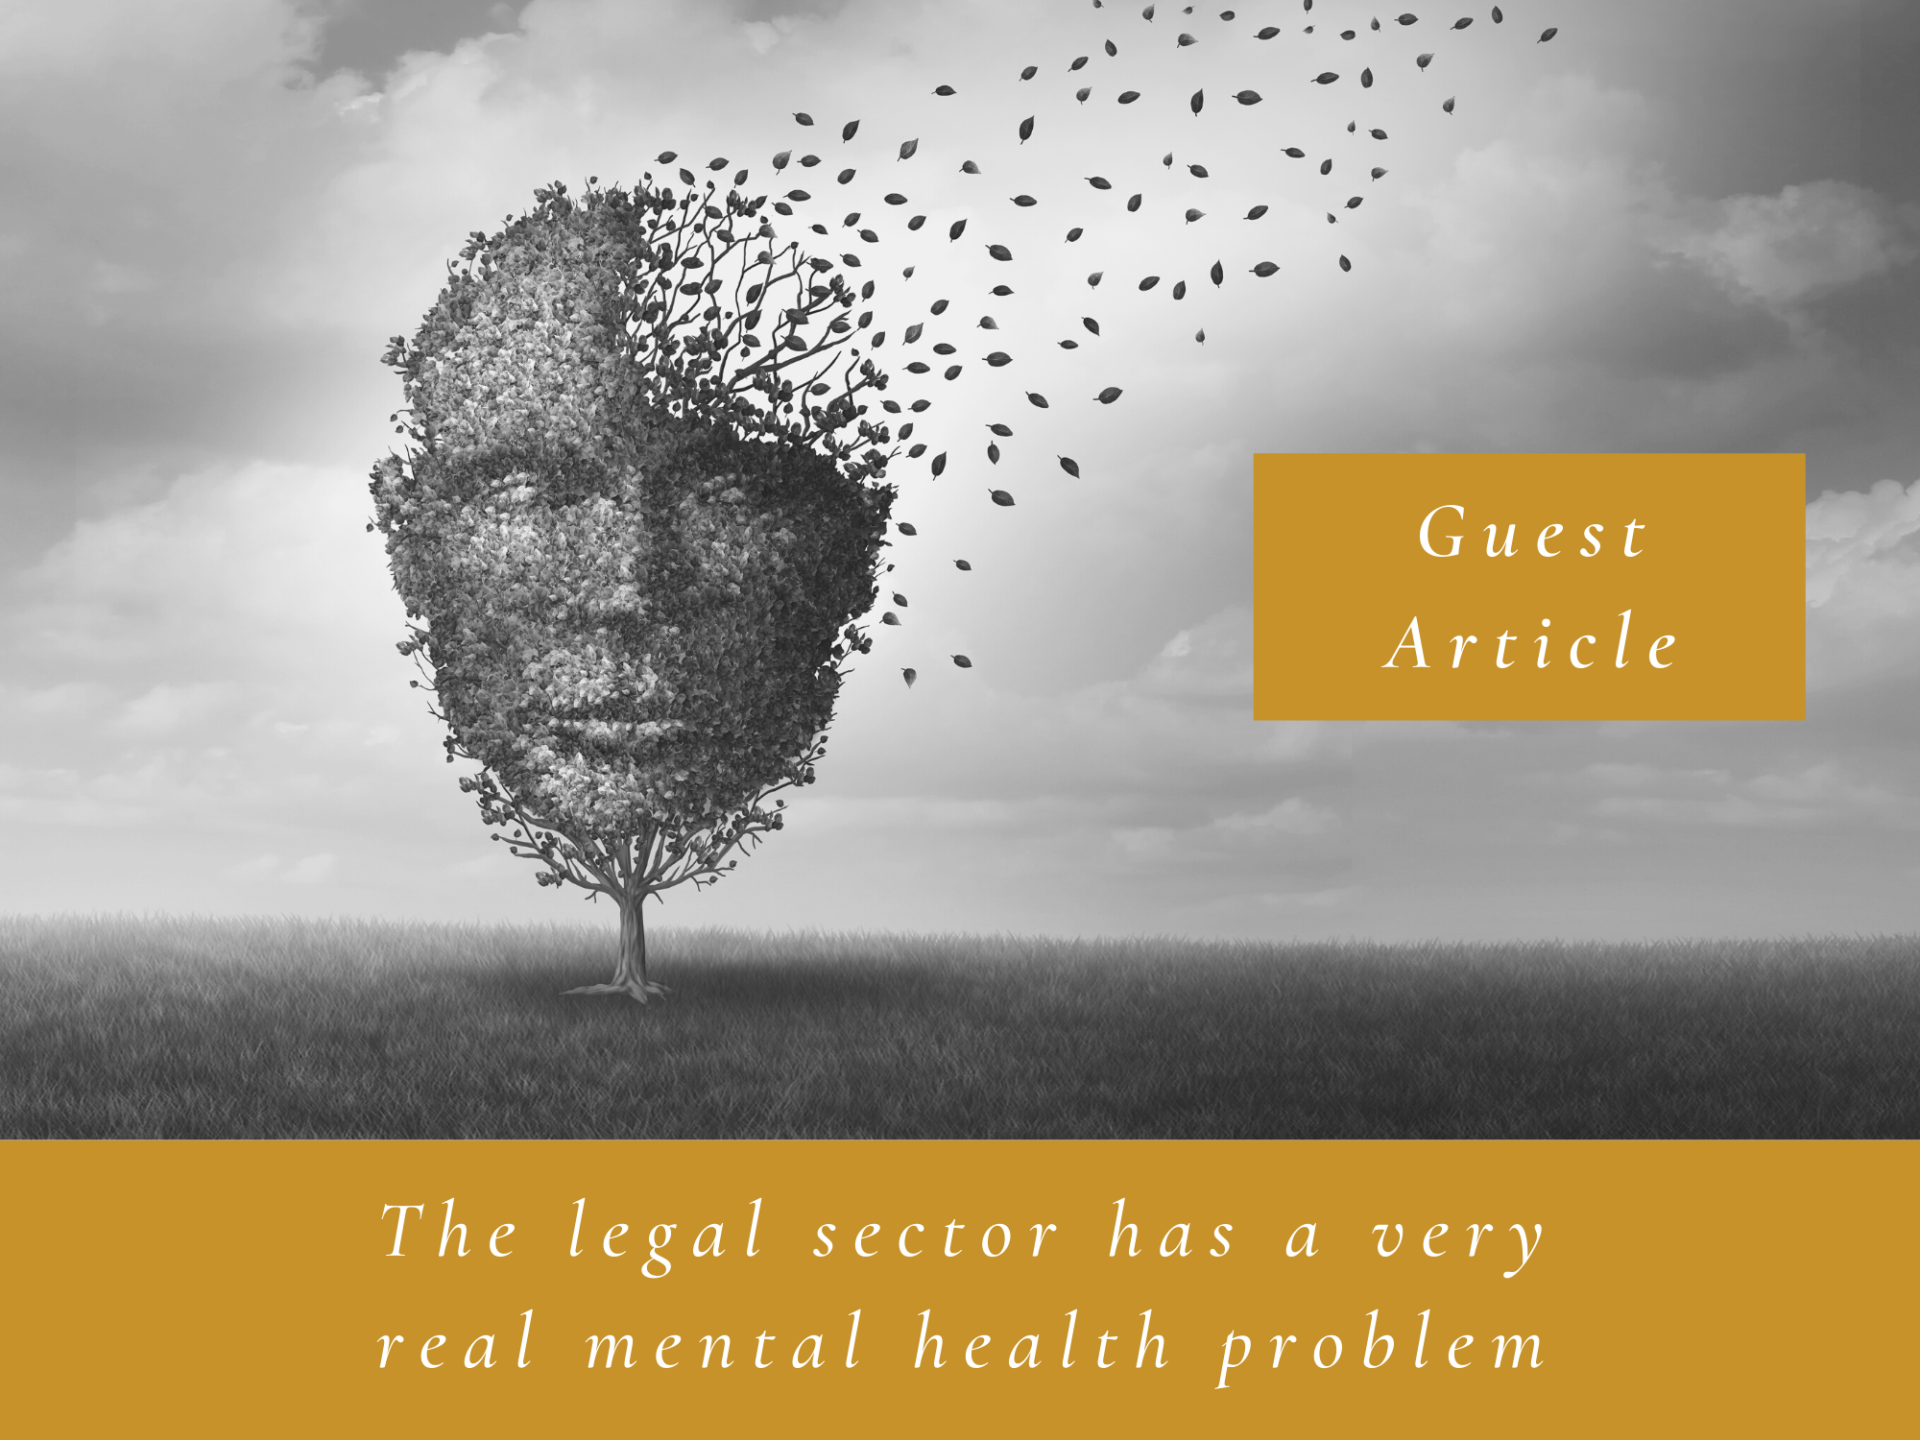 Blog 2 - The legal sector has a very real mental health problem